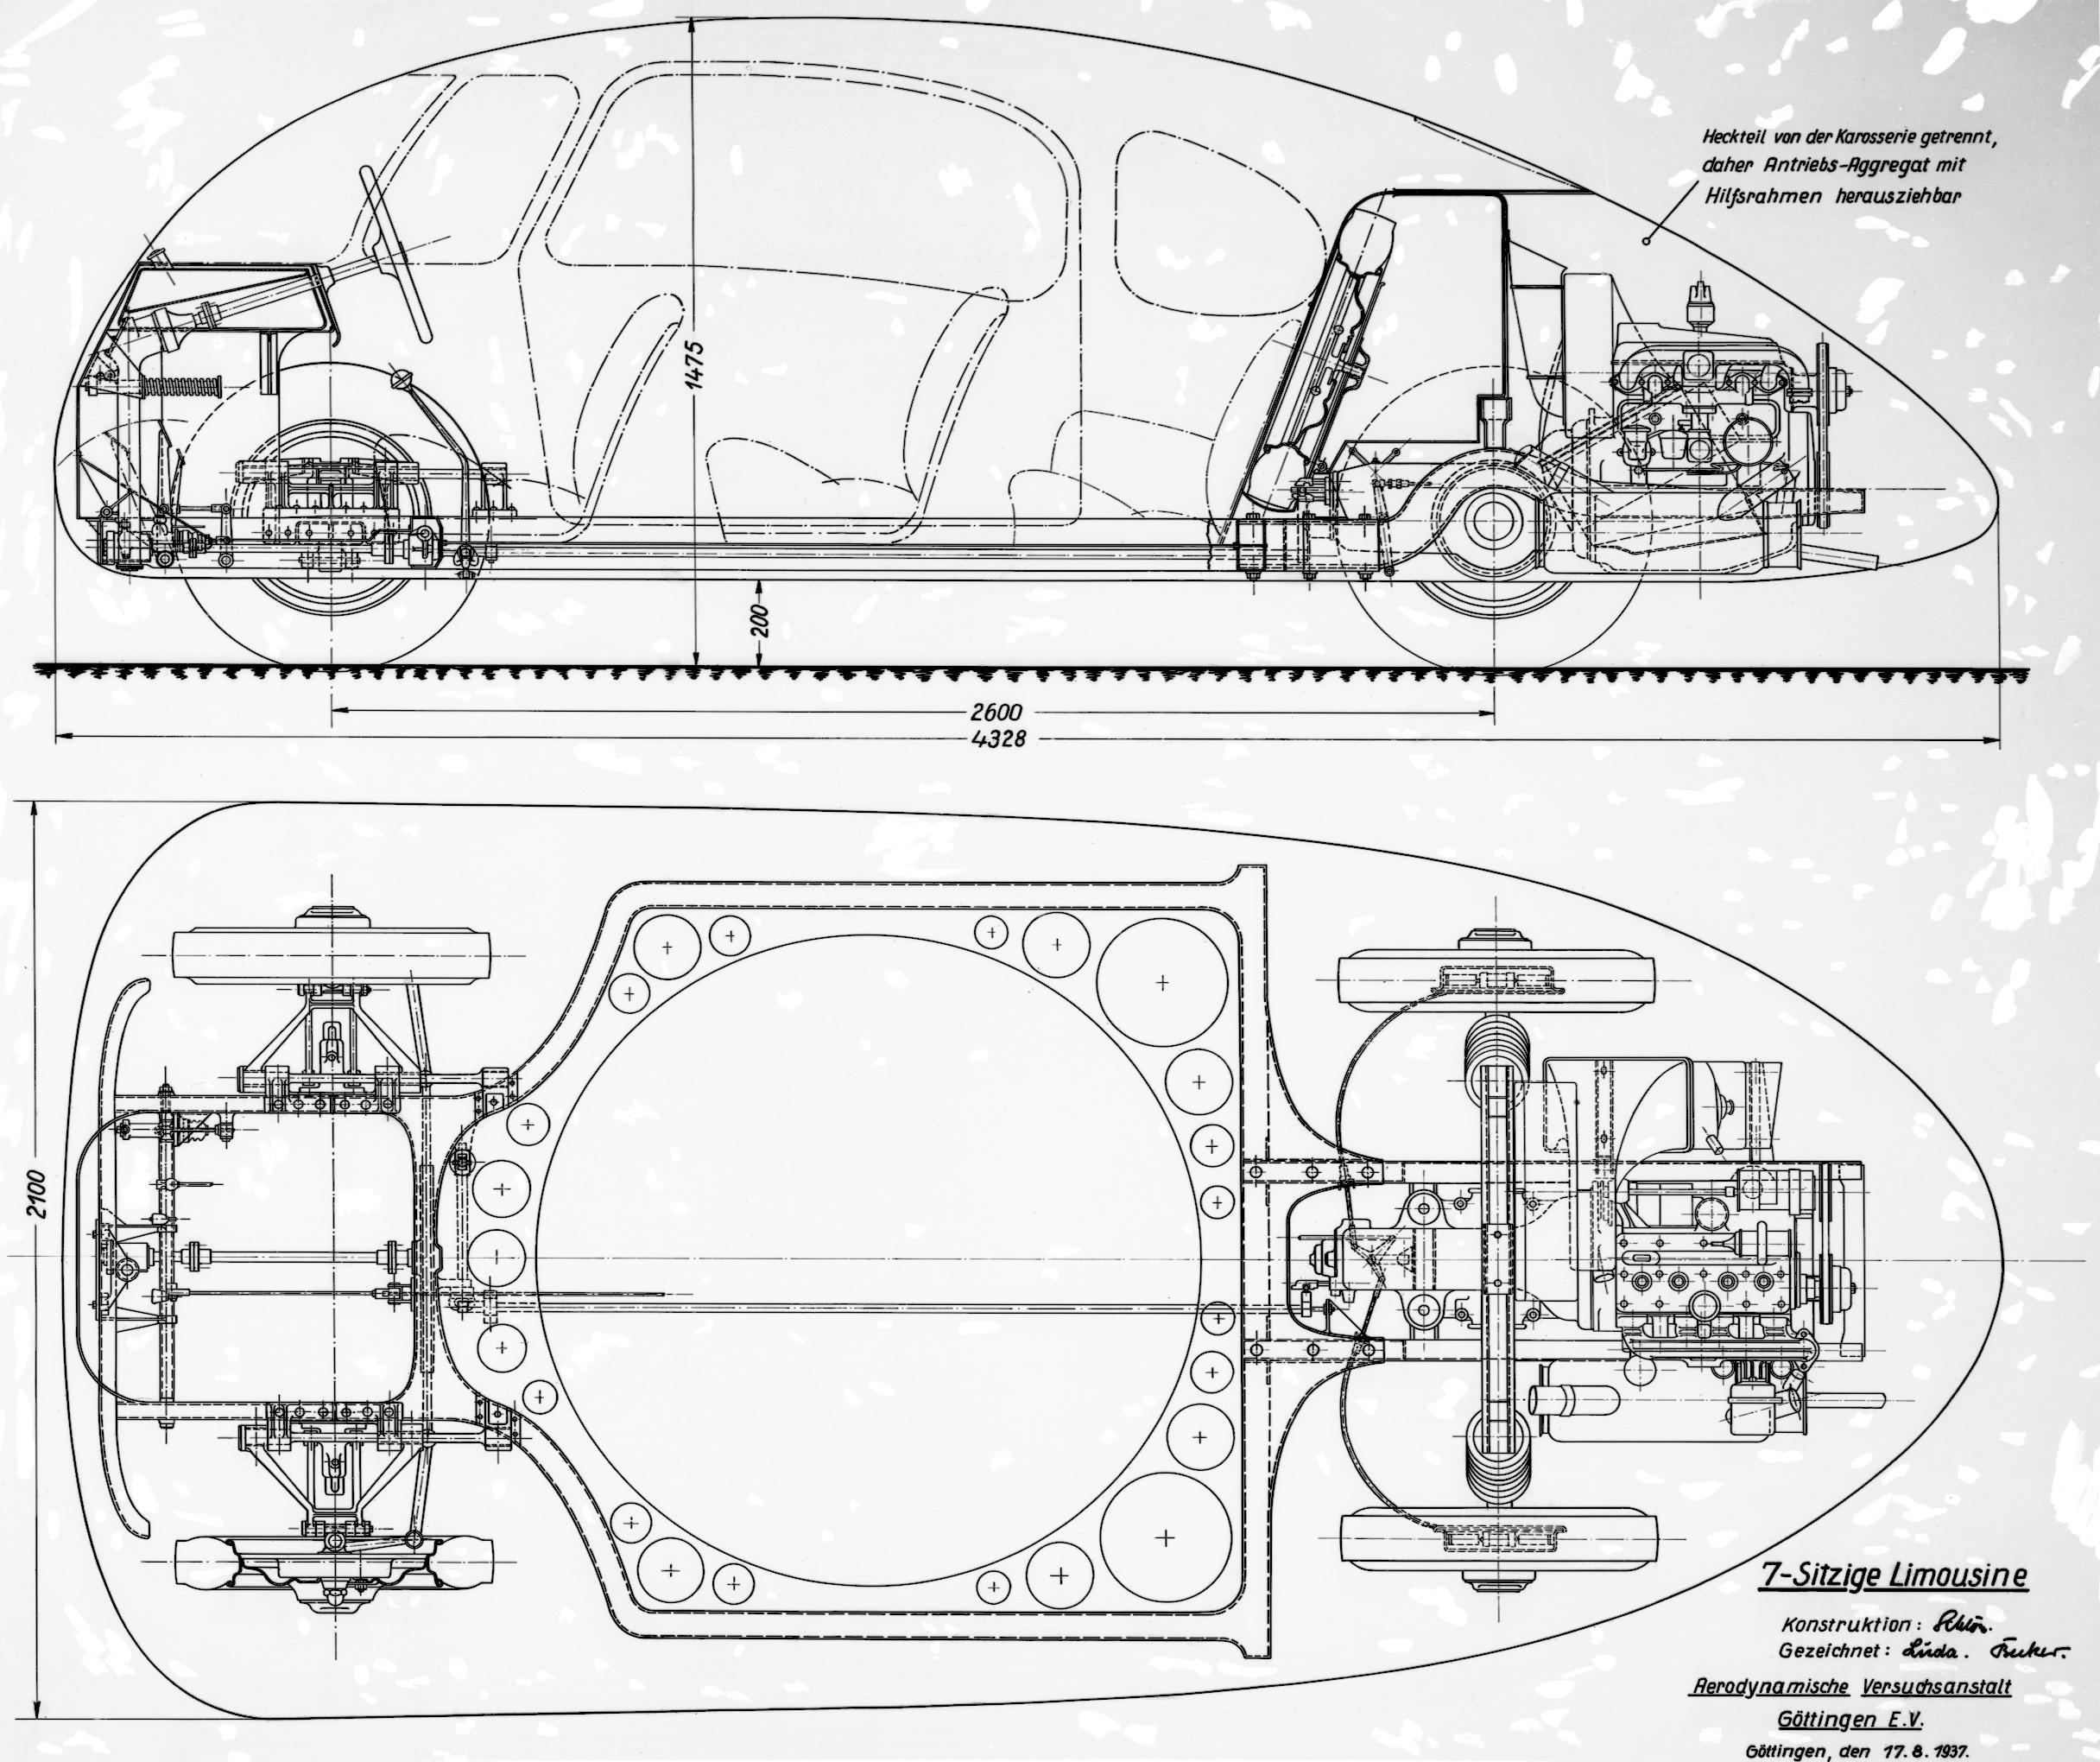 The layout of the Schlörwagen reflects the prevalent German developmental thinking of the thirties, backbone or platform frame chassis, rear mounted engine.